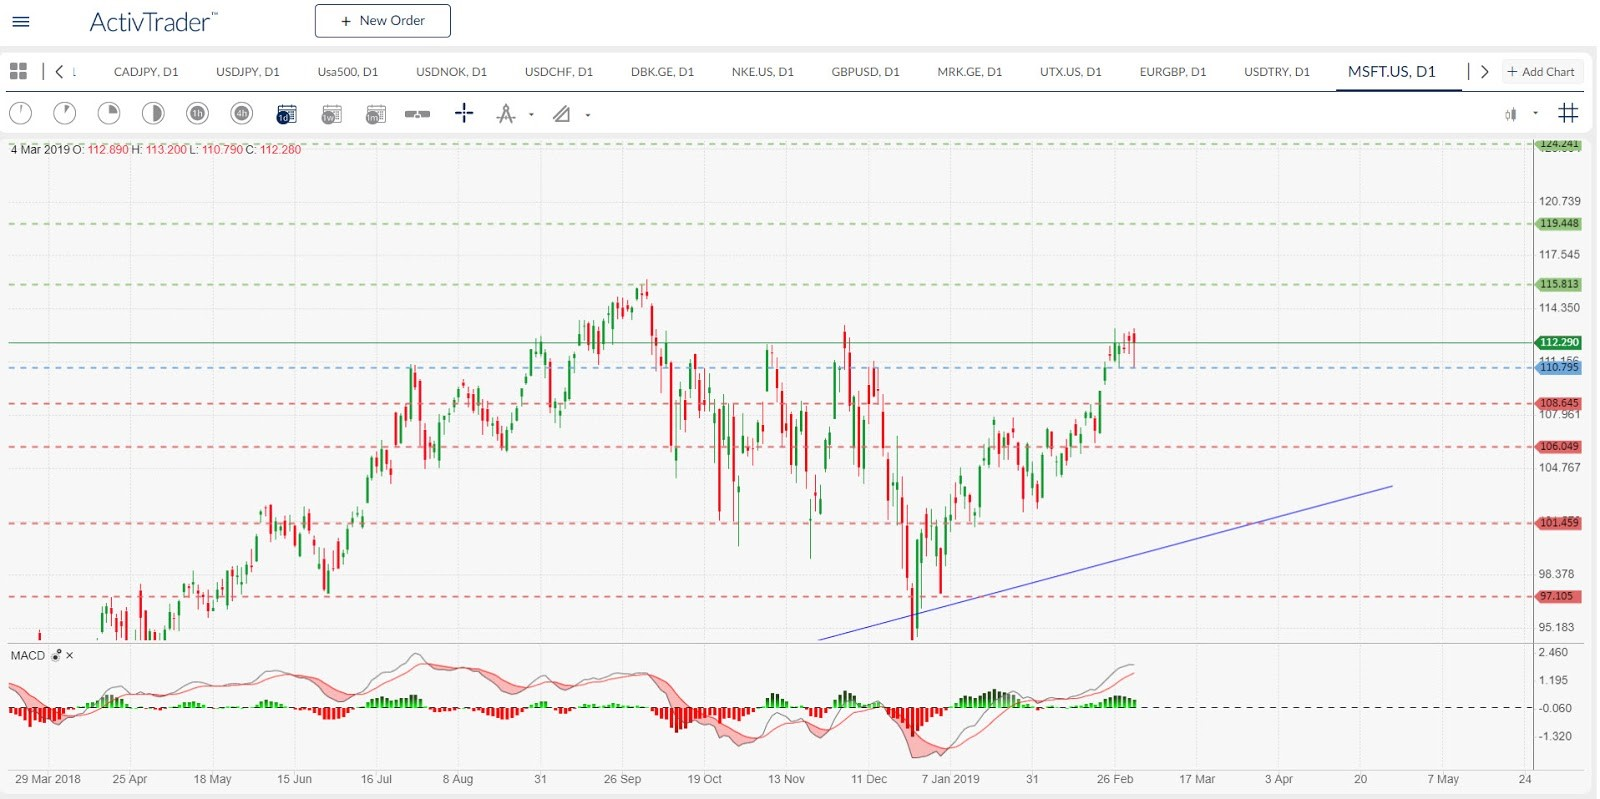 MSFT.US - Daily Chart. | Source: ActivTrader